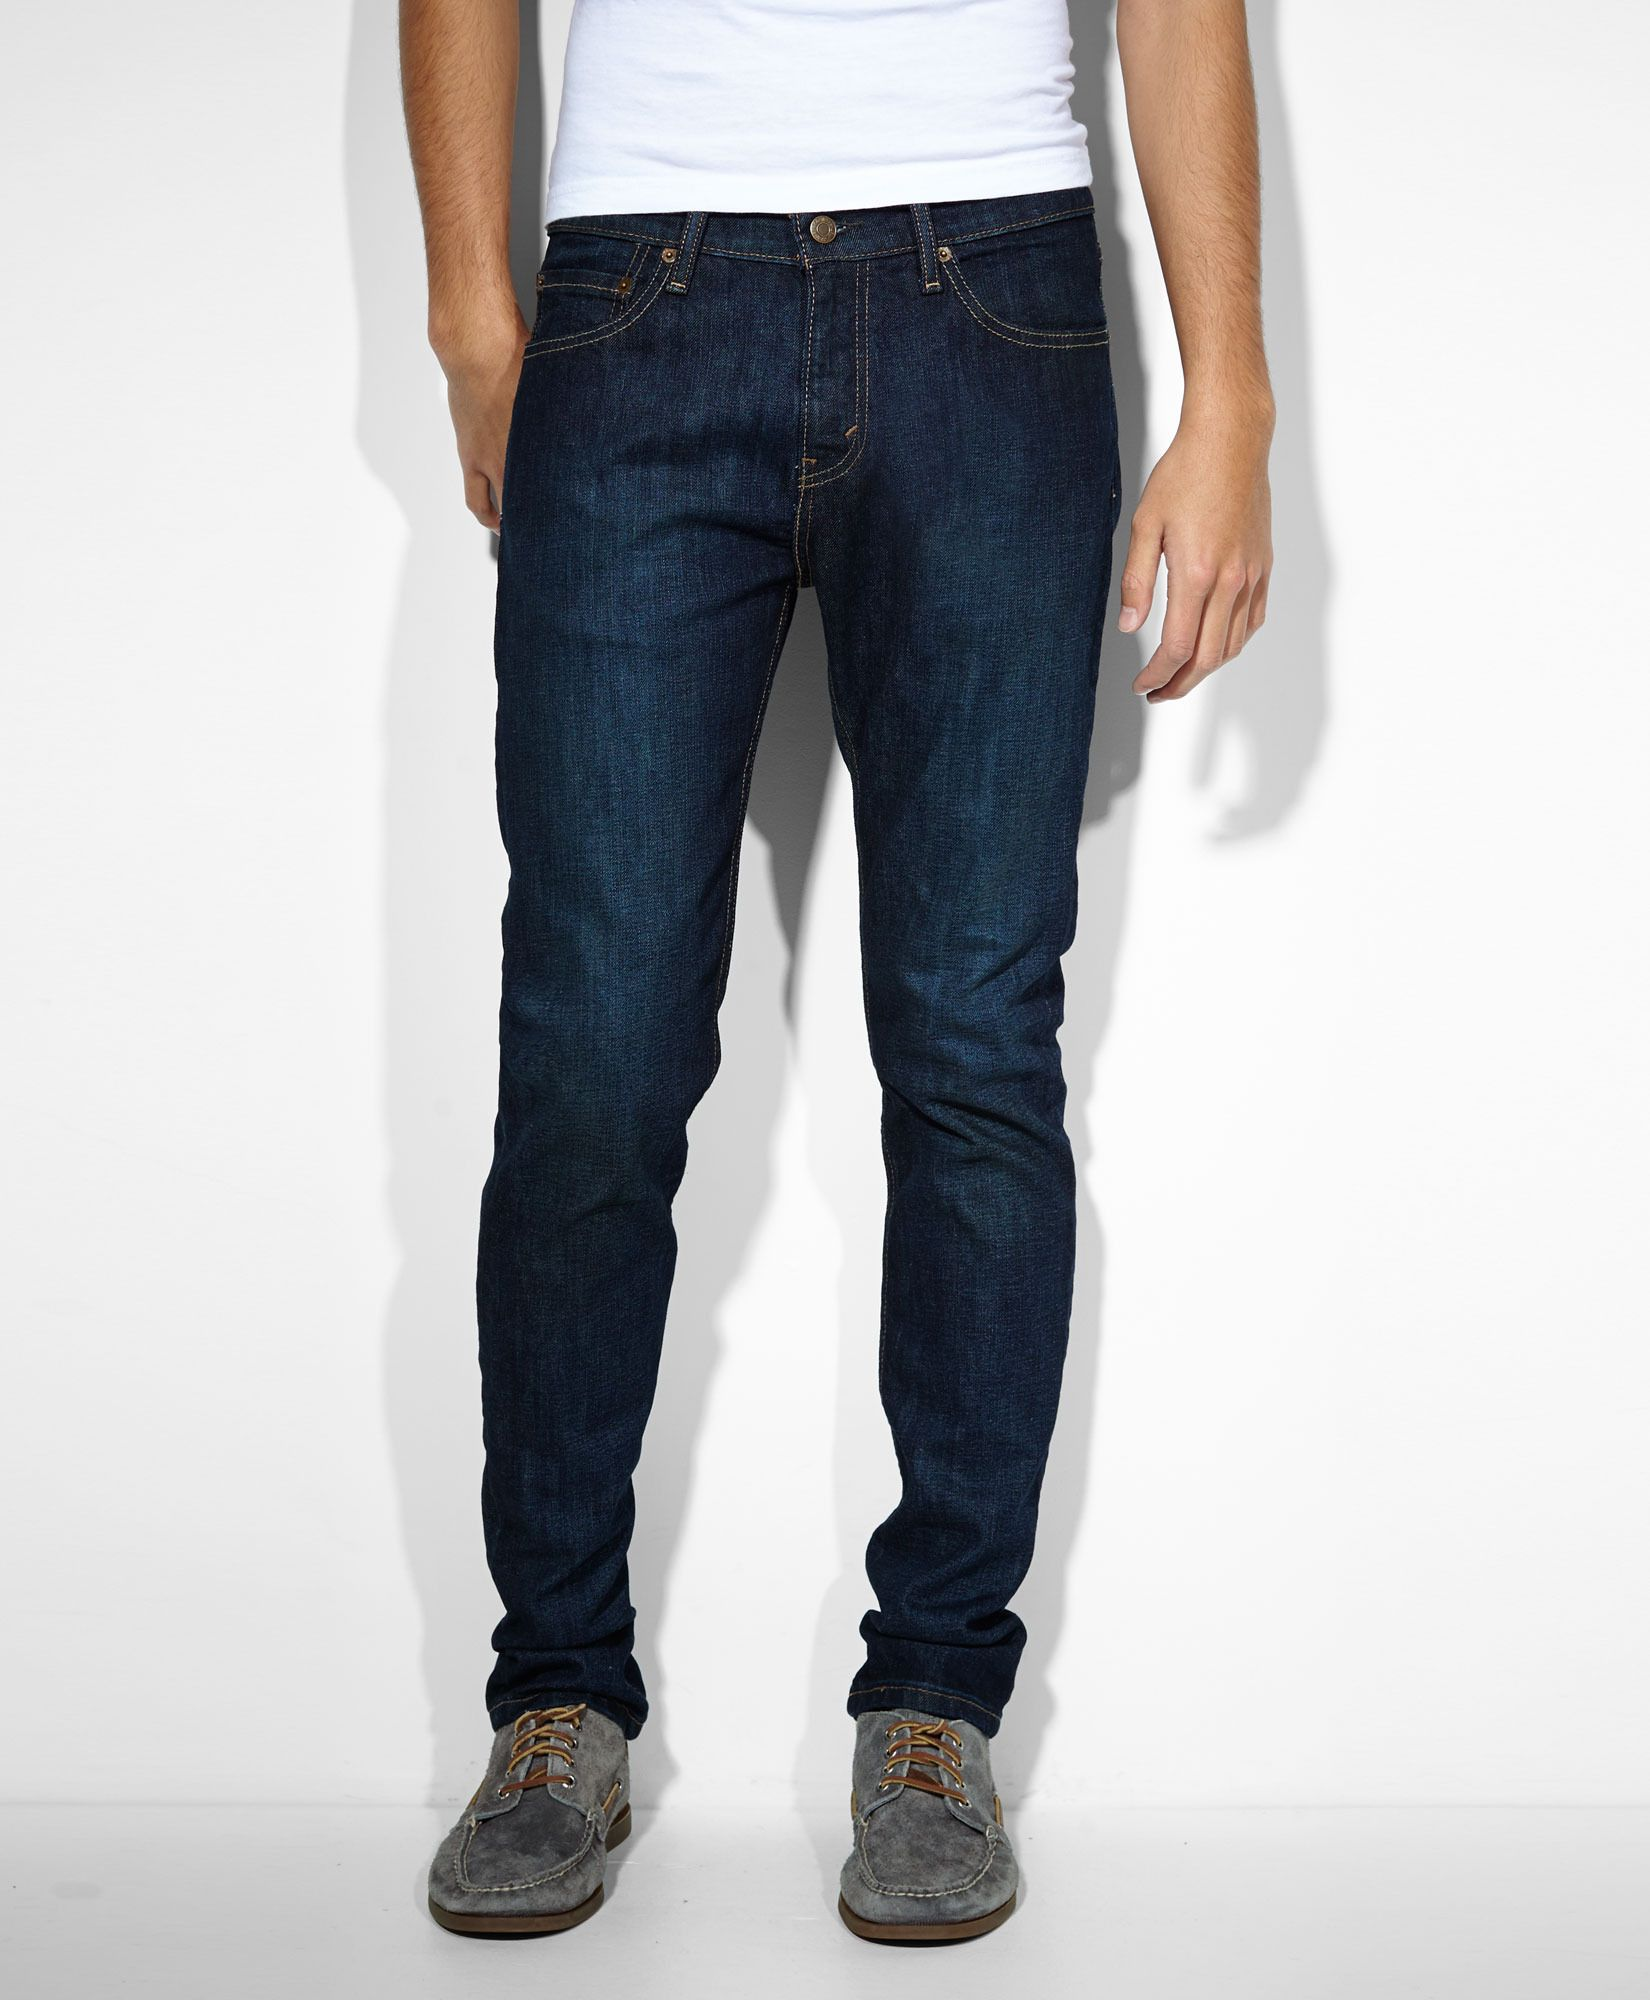 69b3b66f8 Levi's 510™ Skinny Fit Jeans - Spear - Jeans | Men's fashion | Mens ...